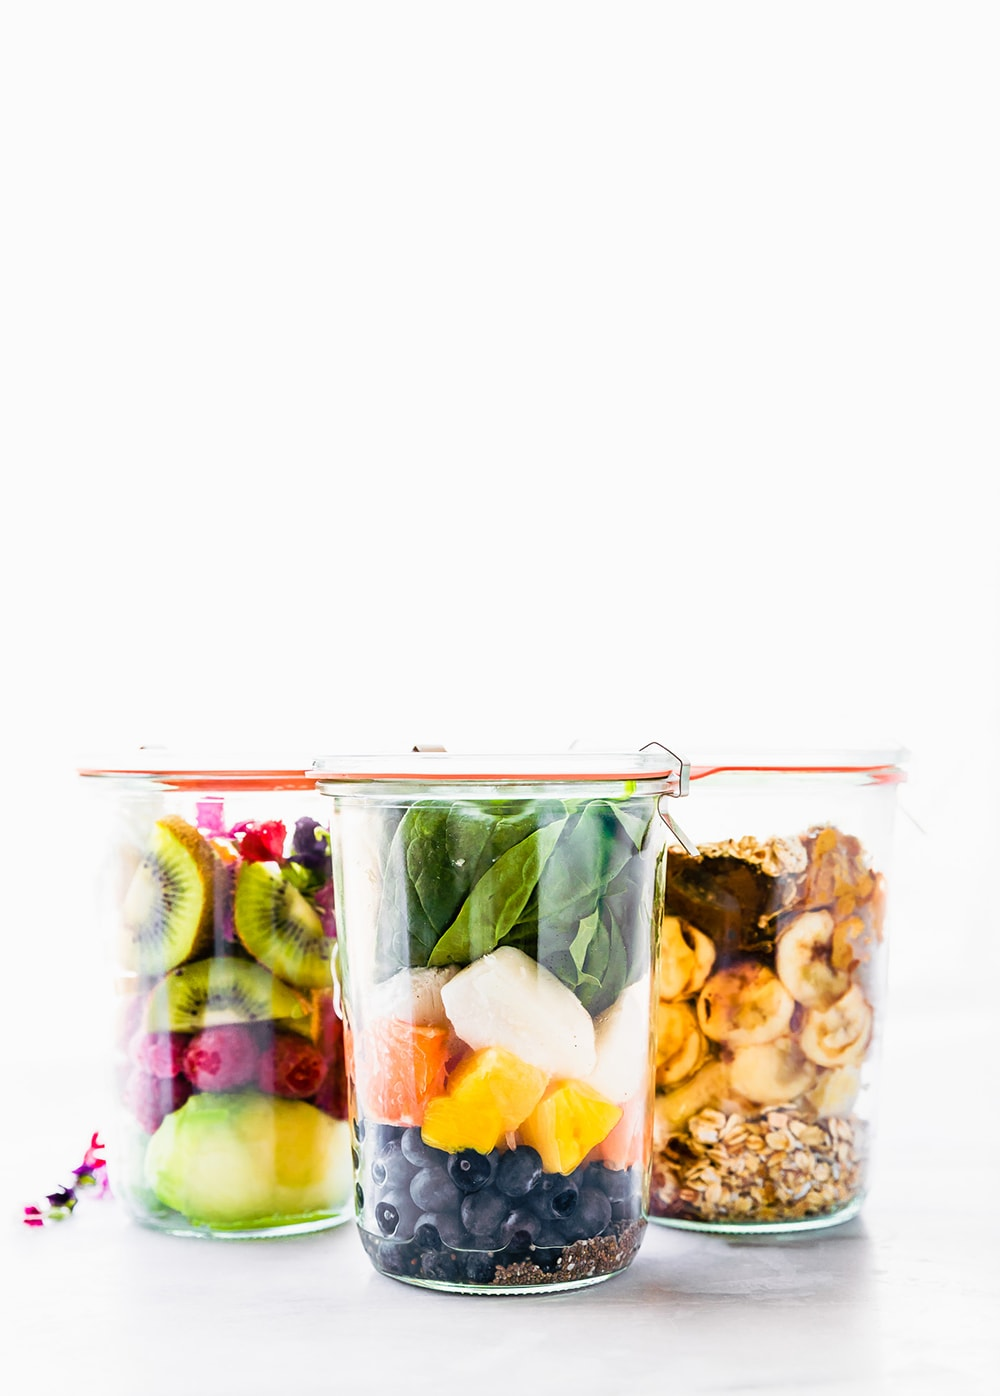 Protein Smoothie Packfrom Cotter Crunch: 100+ awesome vegan meal prep ideas, easy to cook and delicious to eat!